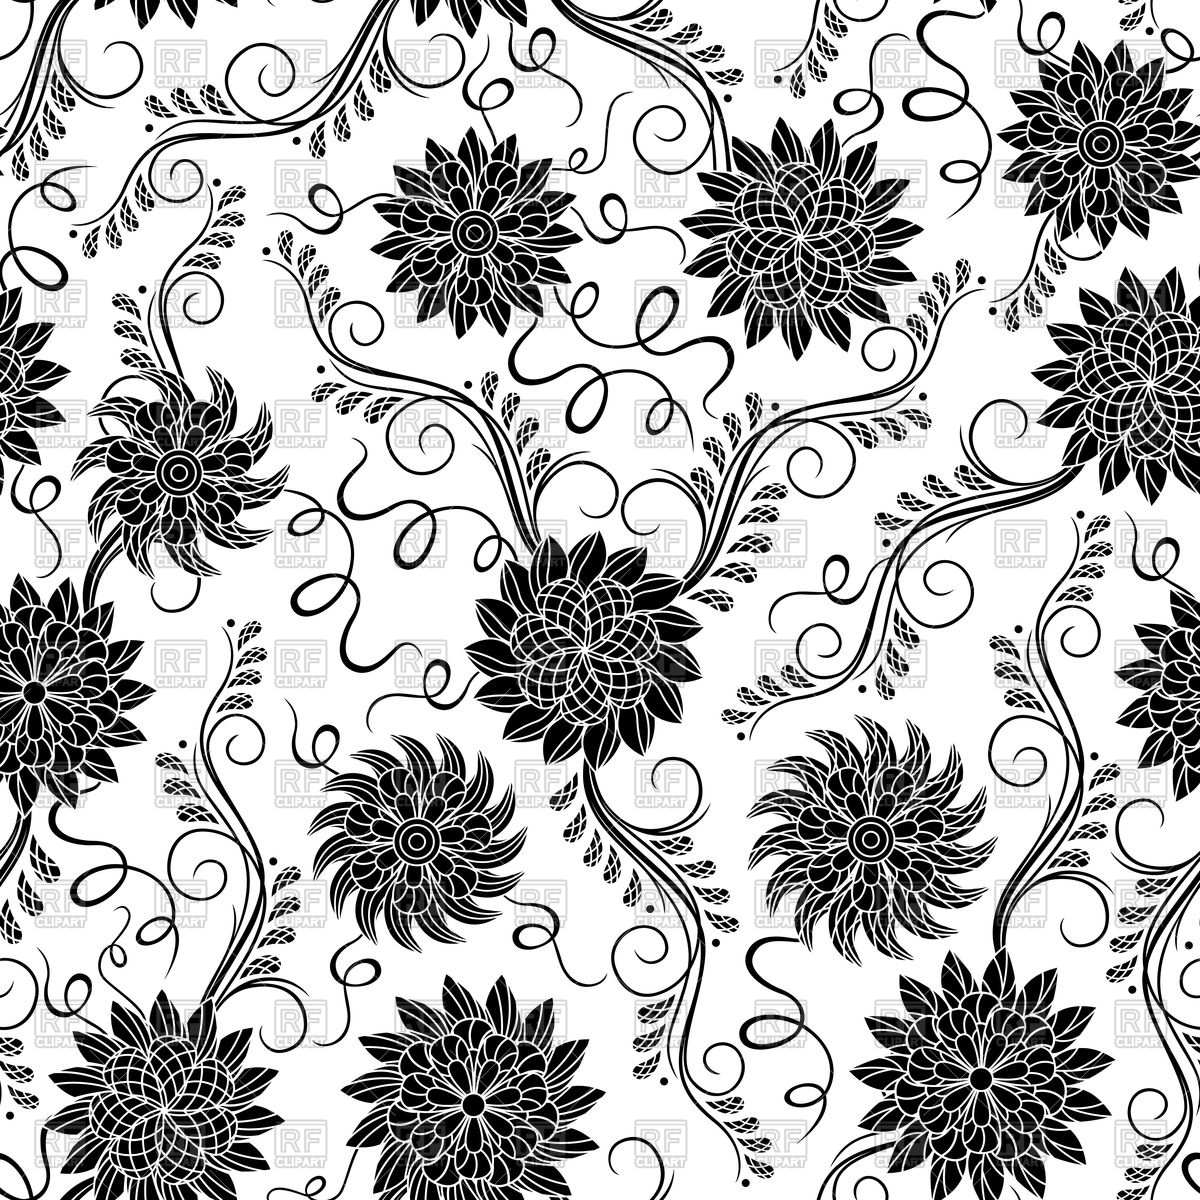 1200x1200 Black And White Seamless Floral Pattern Vector Image Vector